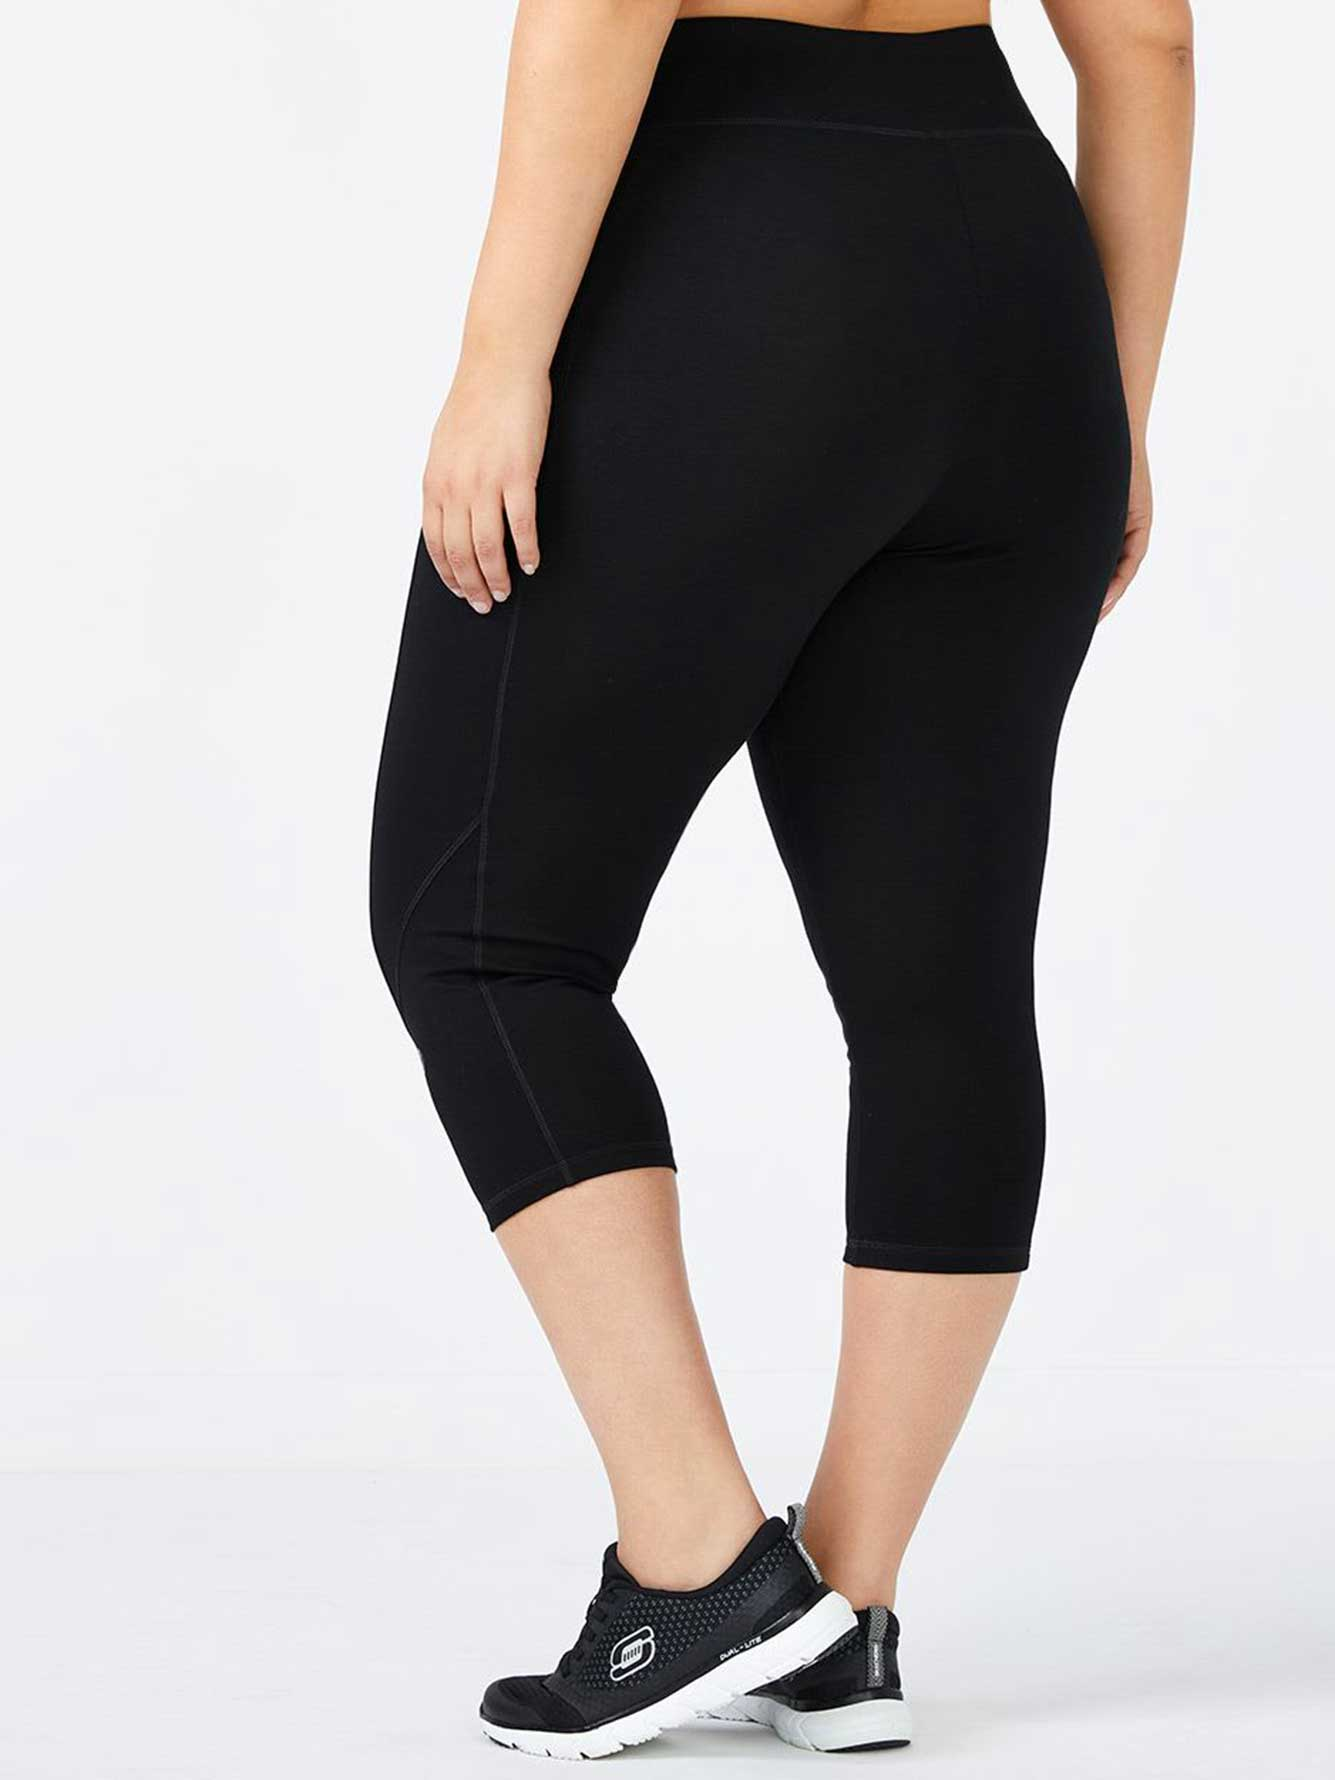 Plus-Size Capri Legging